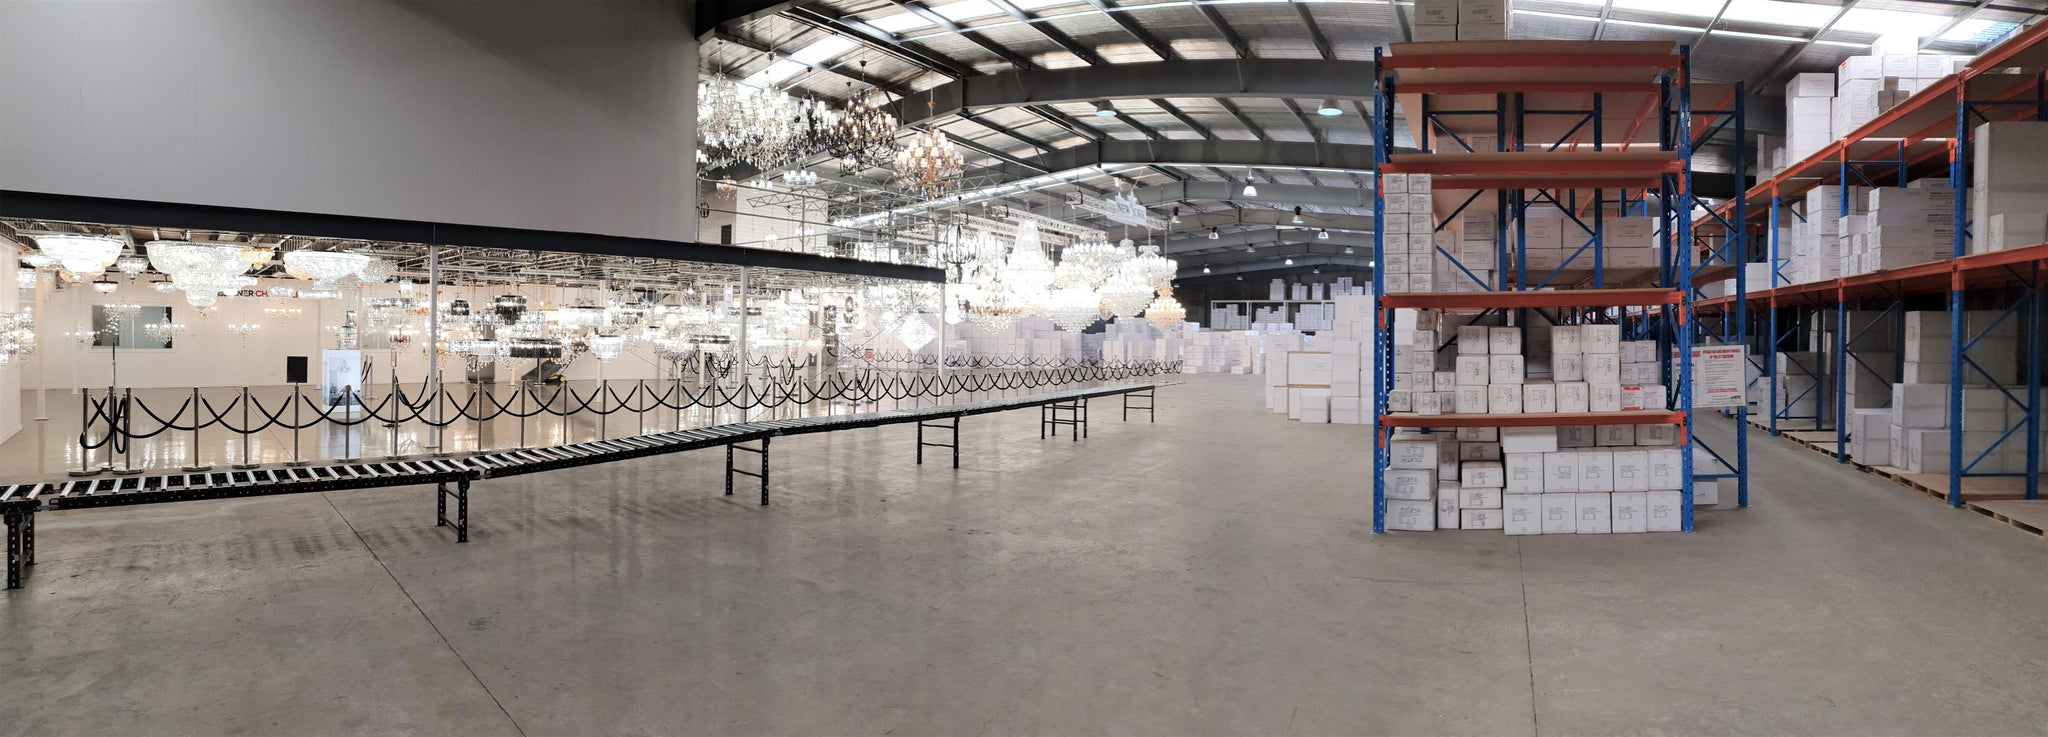 Designer Chandelier Distribution Center Australia